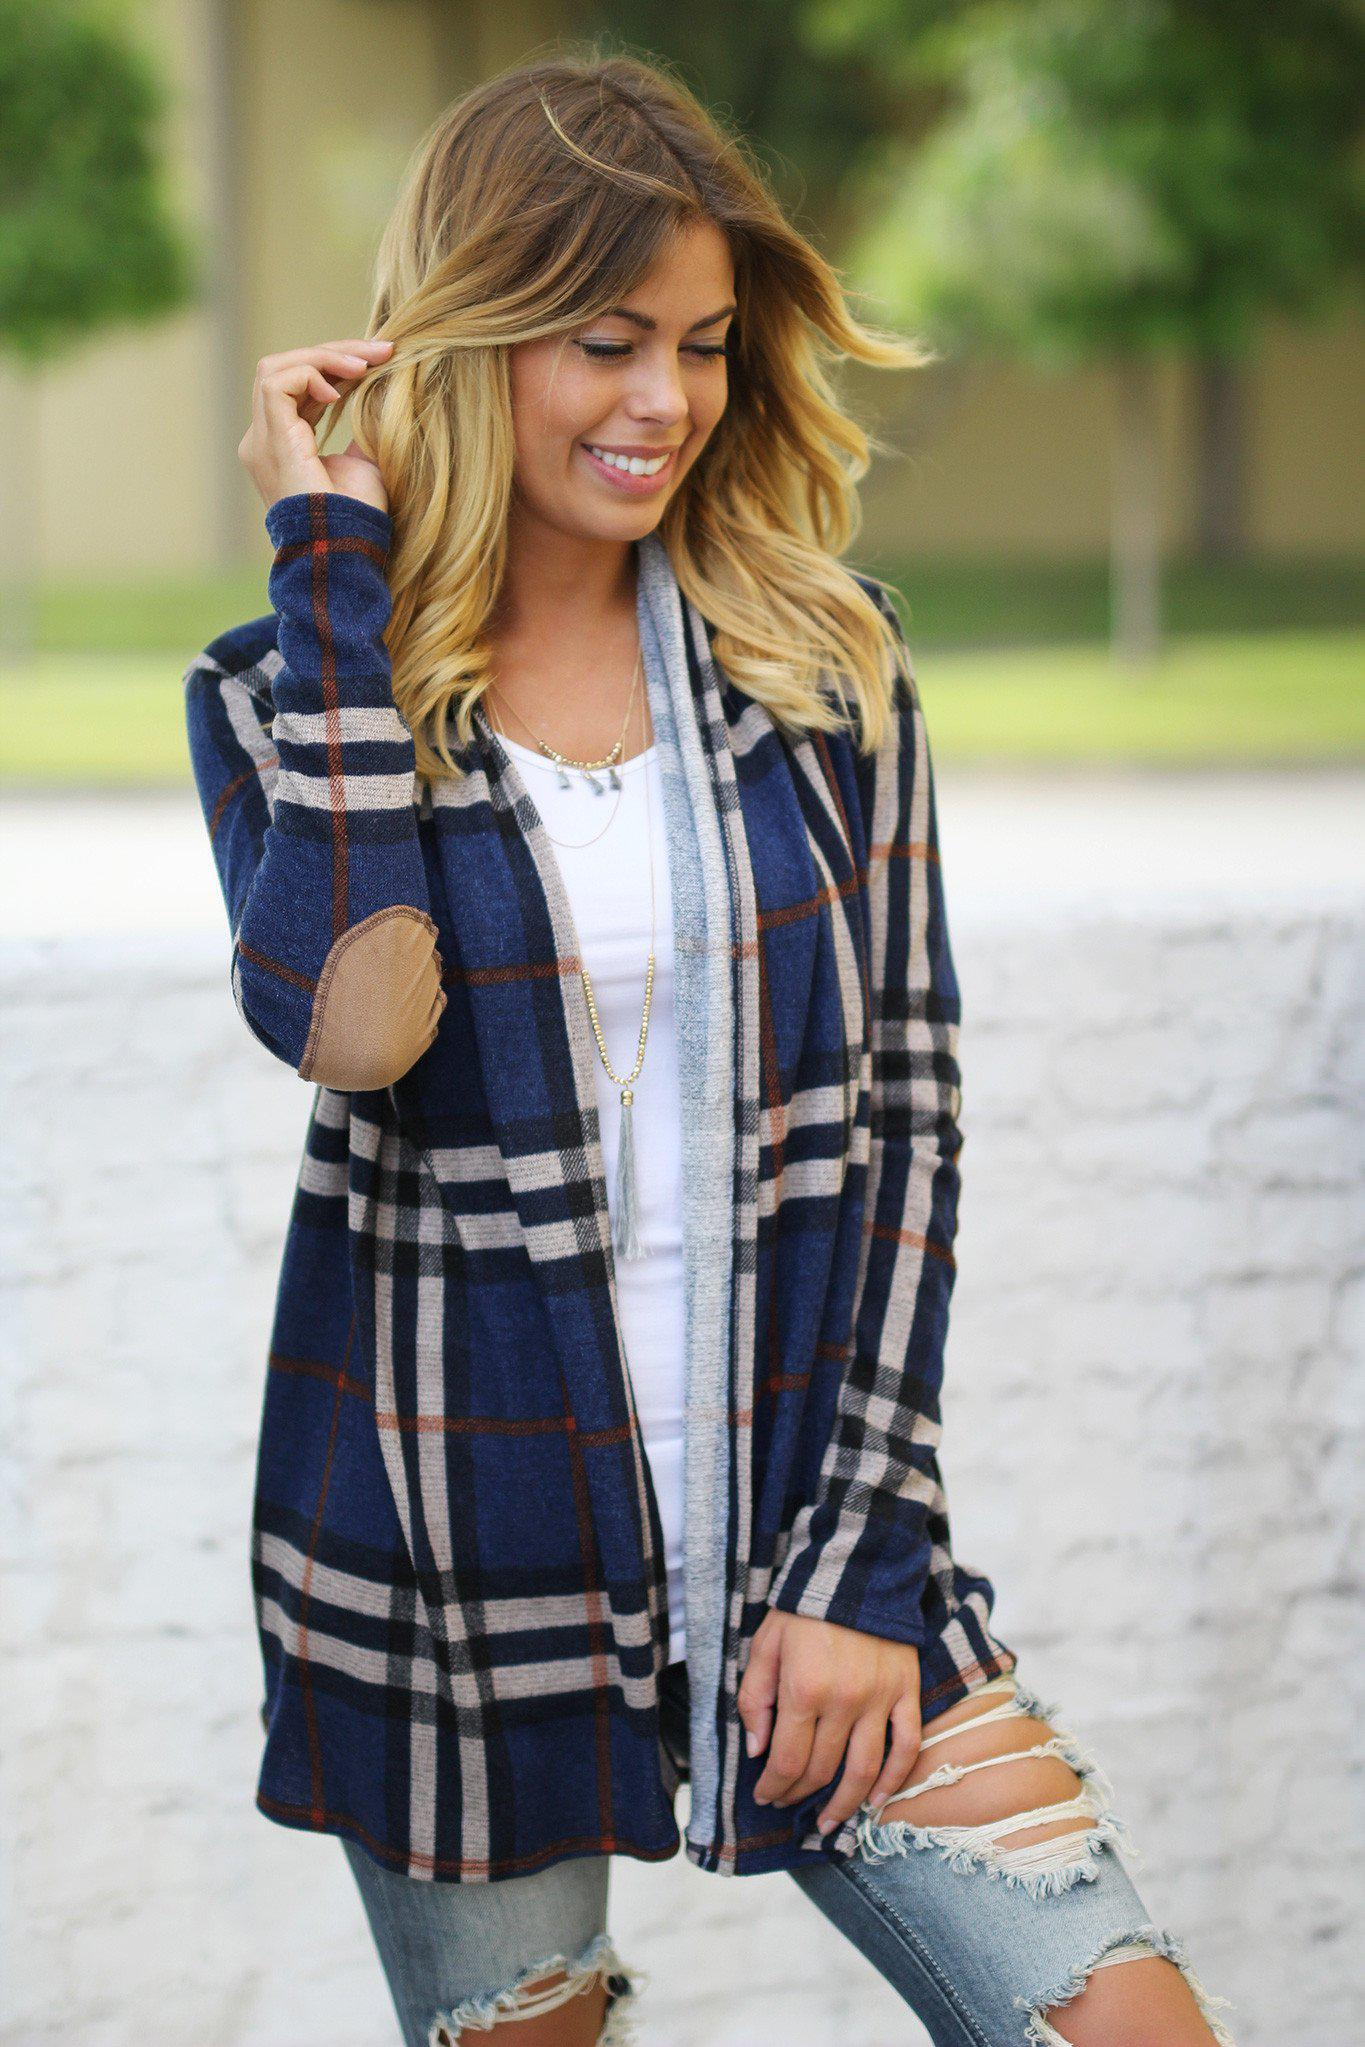 navy and plaid cardigan with elbow patches